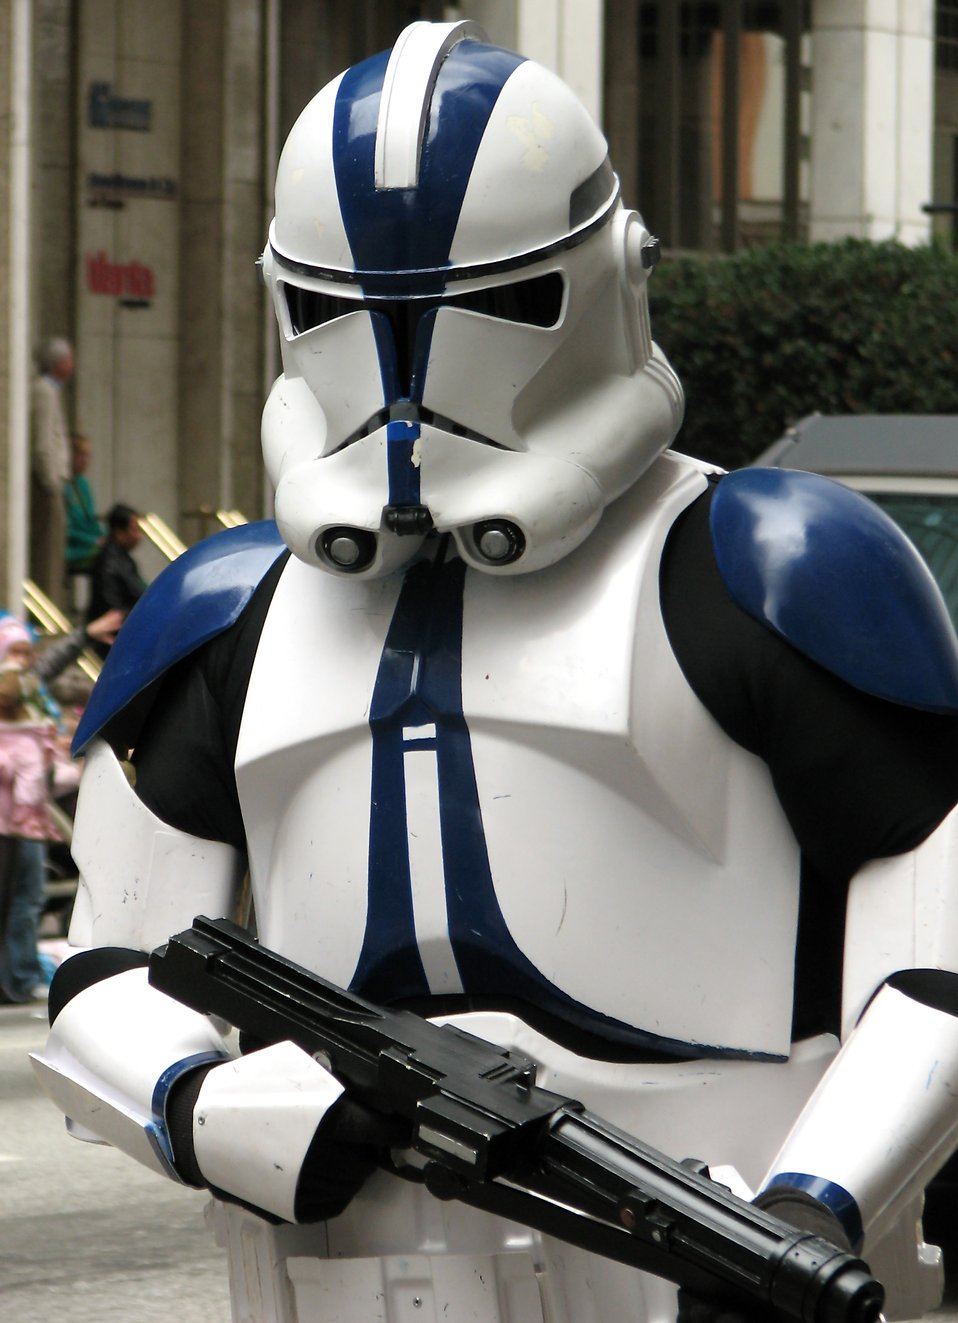 A Star Wars clone trooper at the 2010 Atlanta Saint Patrick's Day Parade : Free Stock Photo